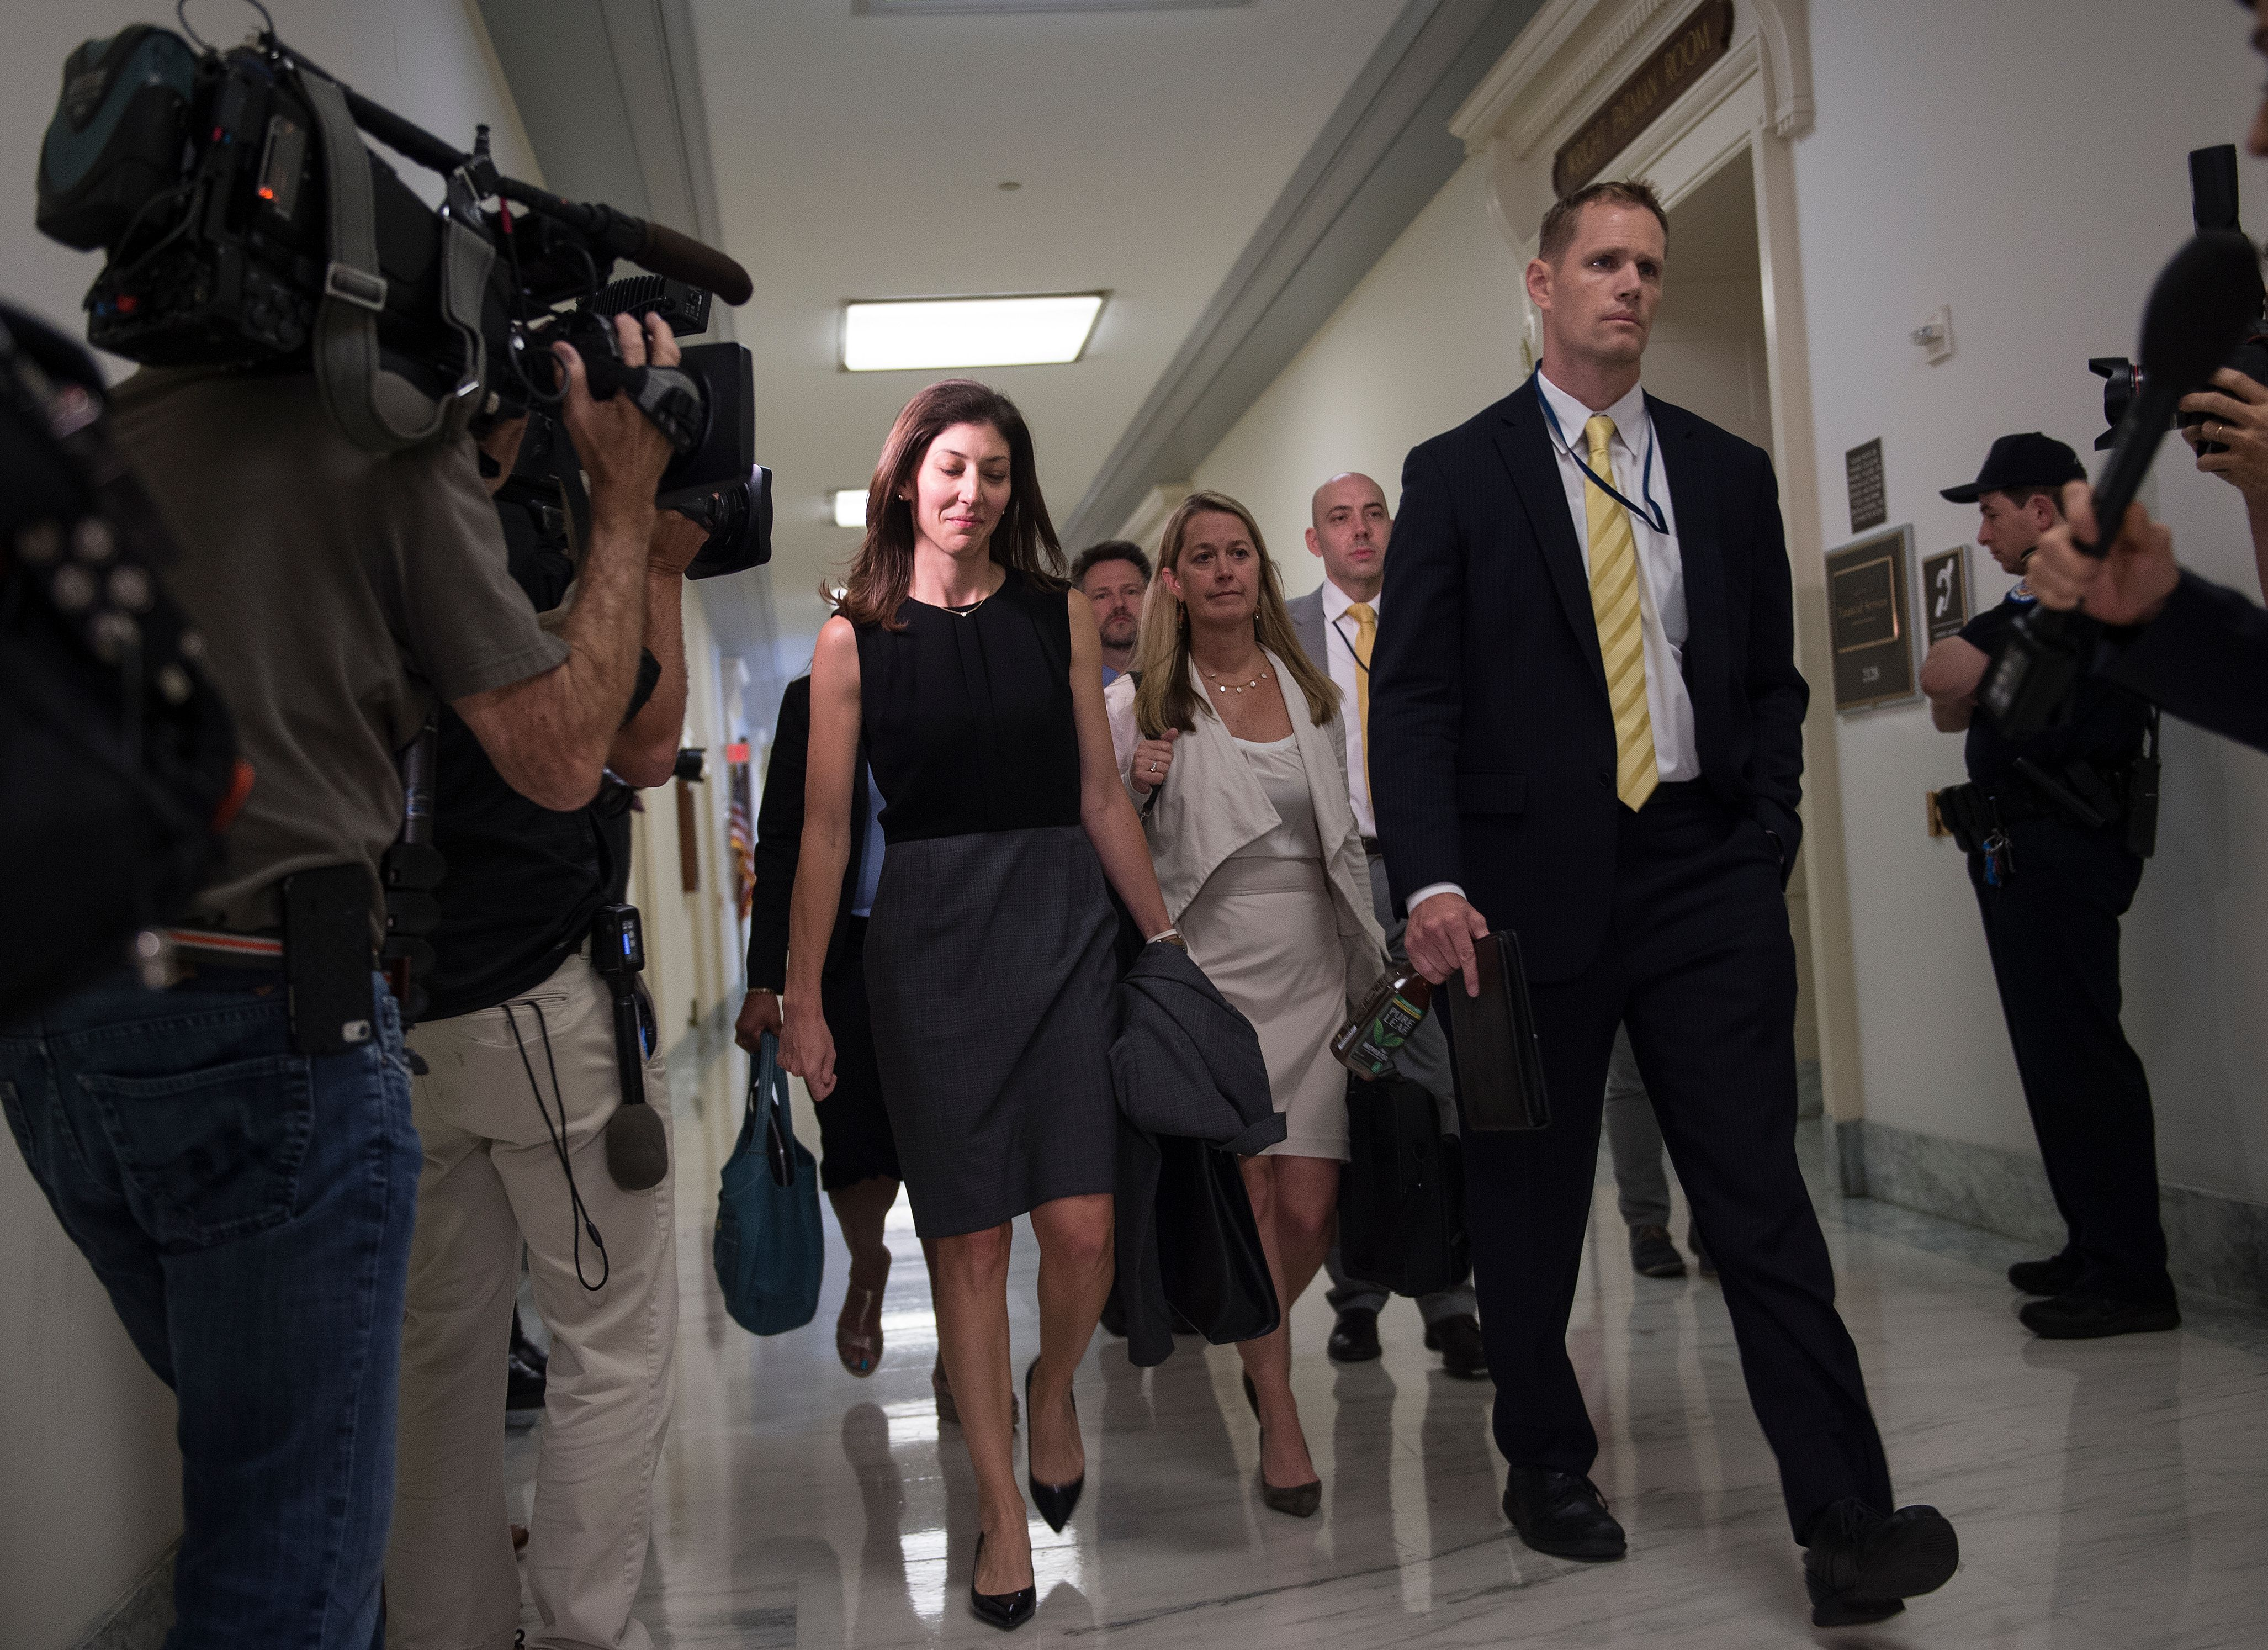 "Lisa Page, former legal counsel to former FBI Director Andrew Mc Cabe, arrives on Capitol Hill July 13, 2018 to provide closed-door testimony about the texts critical of Donald Trump that she exchanged with her FBI agent lover during the 2016 presidential campaign. - Republicans accuse the pair, Lisa Page and Peter Strzok, of deep anti-Trump bias as they helped conduct investigations of both Hillary Clinton and the candidate who would eventually become the US president. Page -- whose affair with Strzok has led Trump to dub them the ""FBI lovers"" -- struck a deal with the House Judiciary Committee to testify privately after months of attempts to haul her before Congress, including defying a subpoena to testify publicly this week. (Photo by ANDREW CABALLERO-REYNOLDS / AFP via Getty Images)"